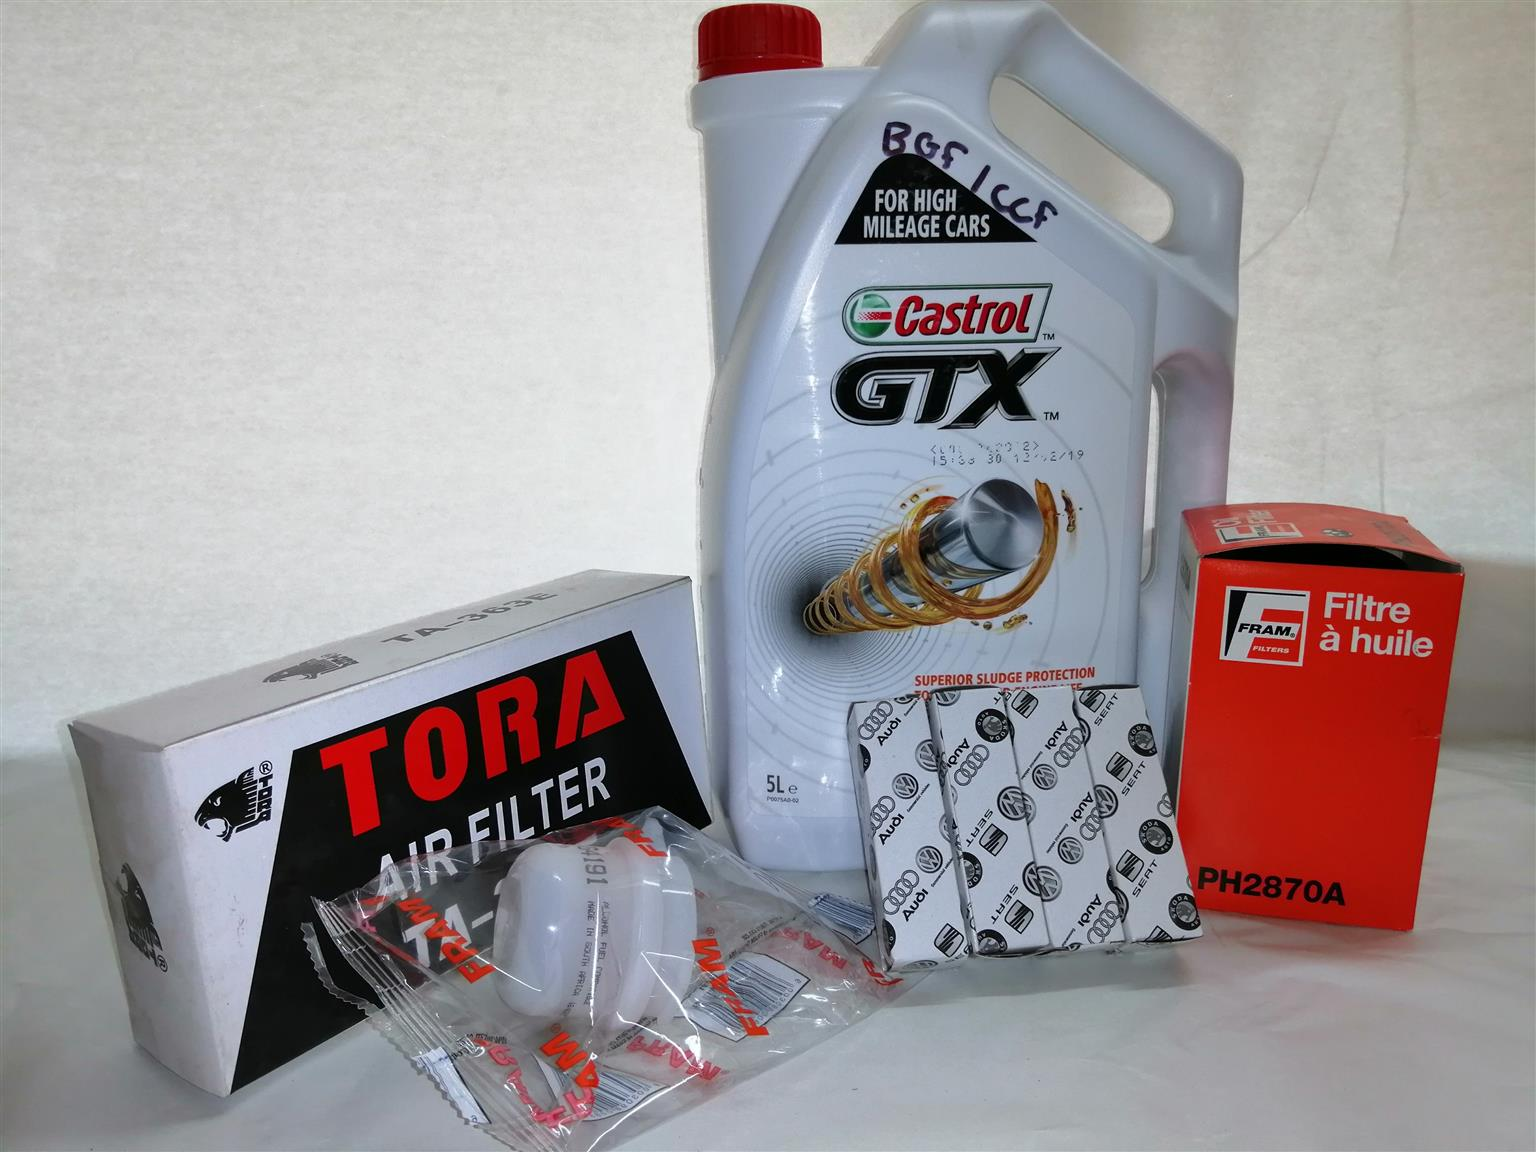 GOLF 1.4 CITI ROX SERVICE KIT